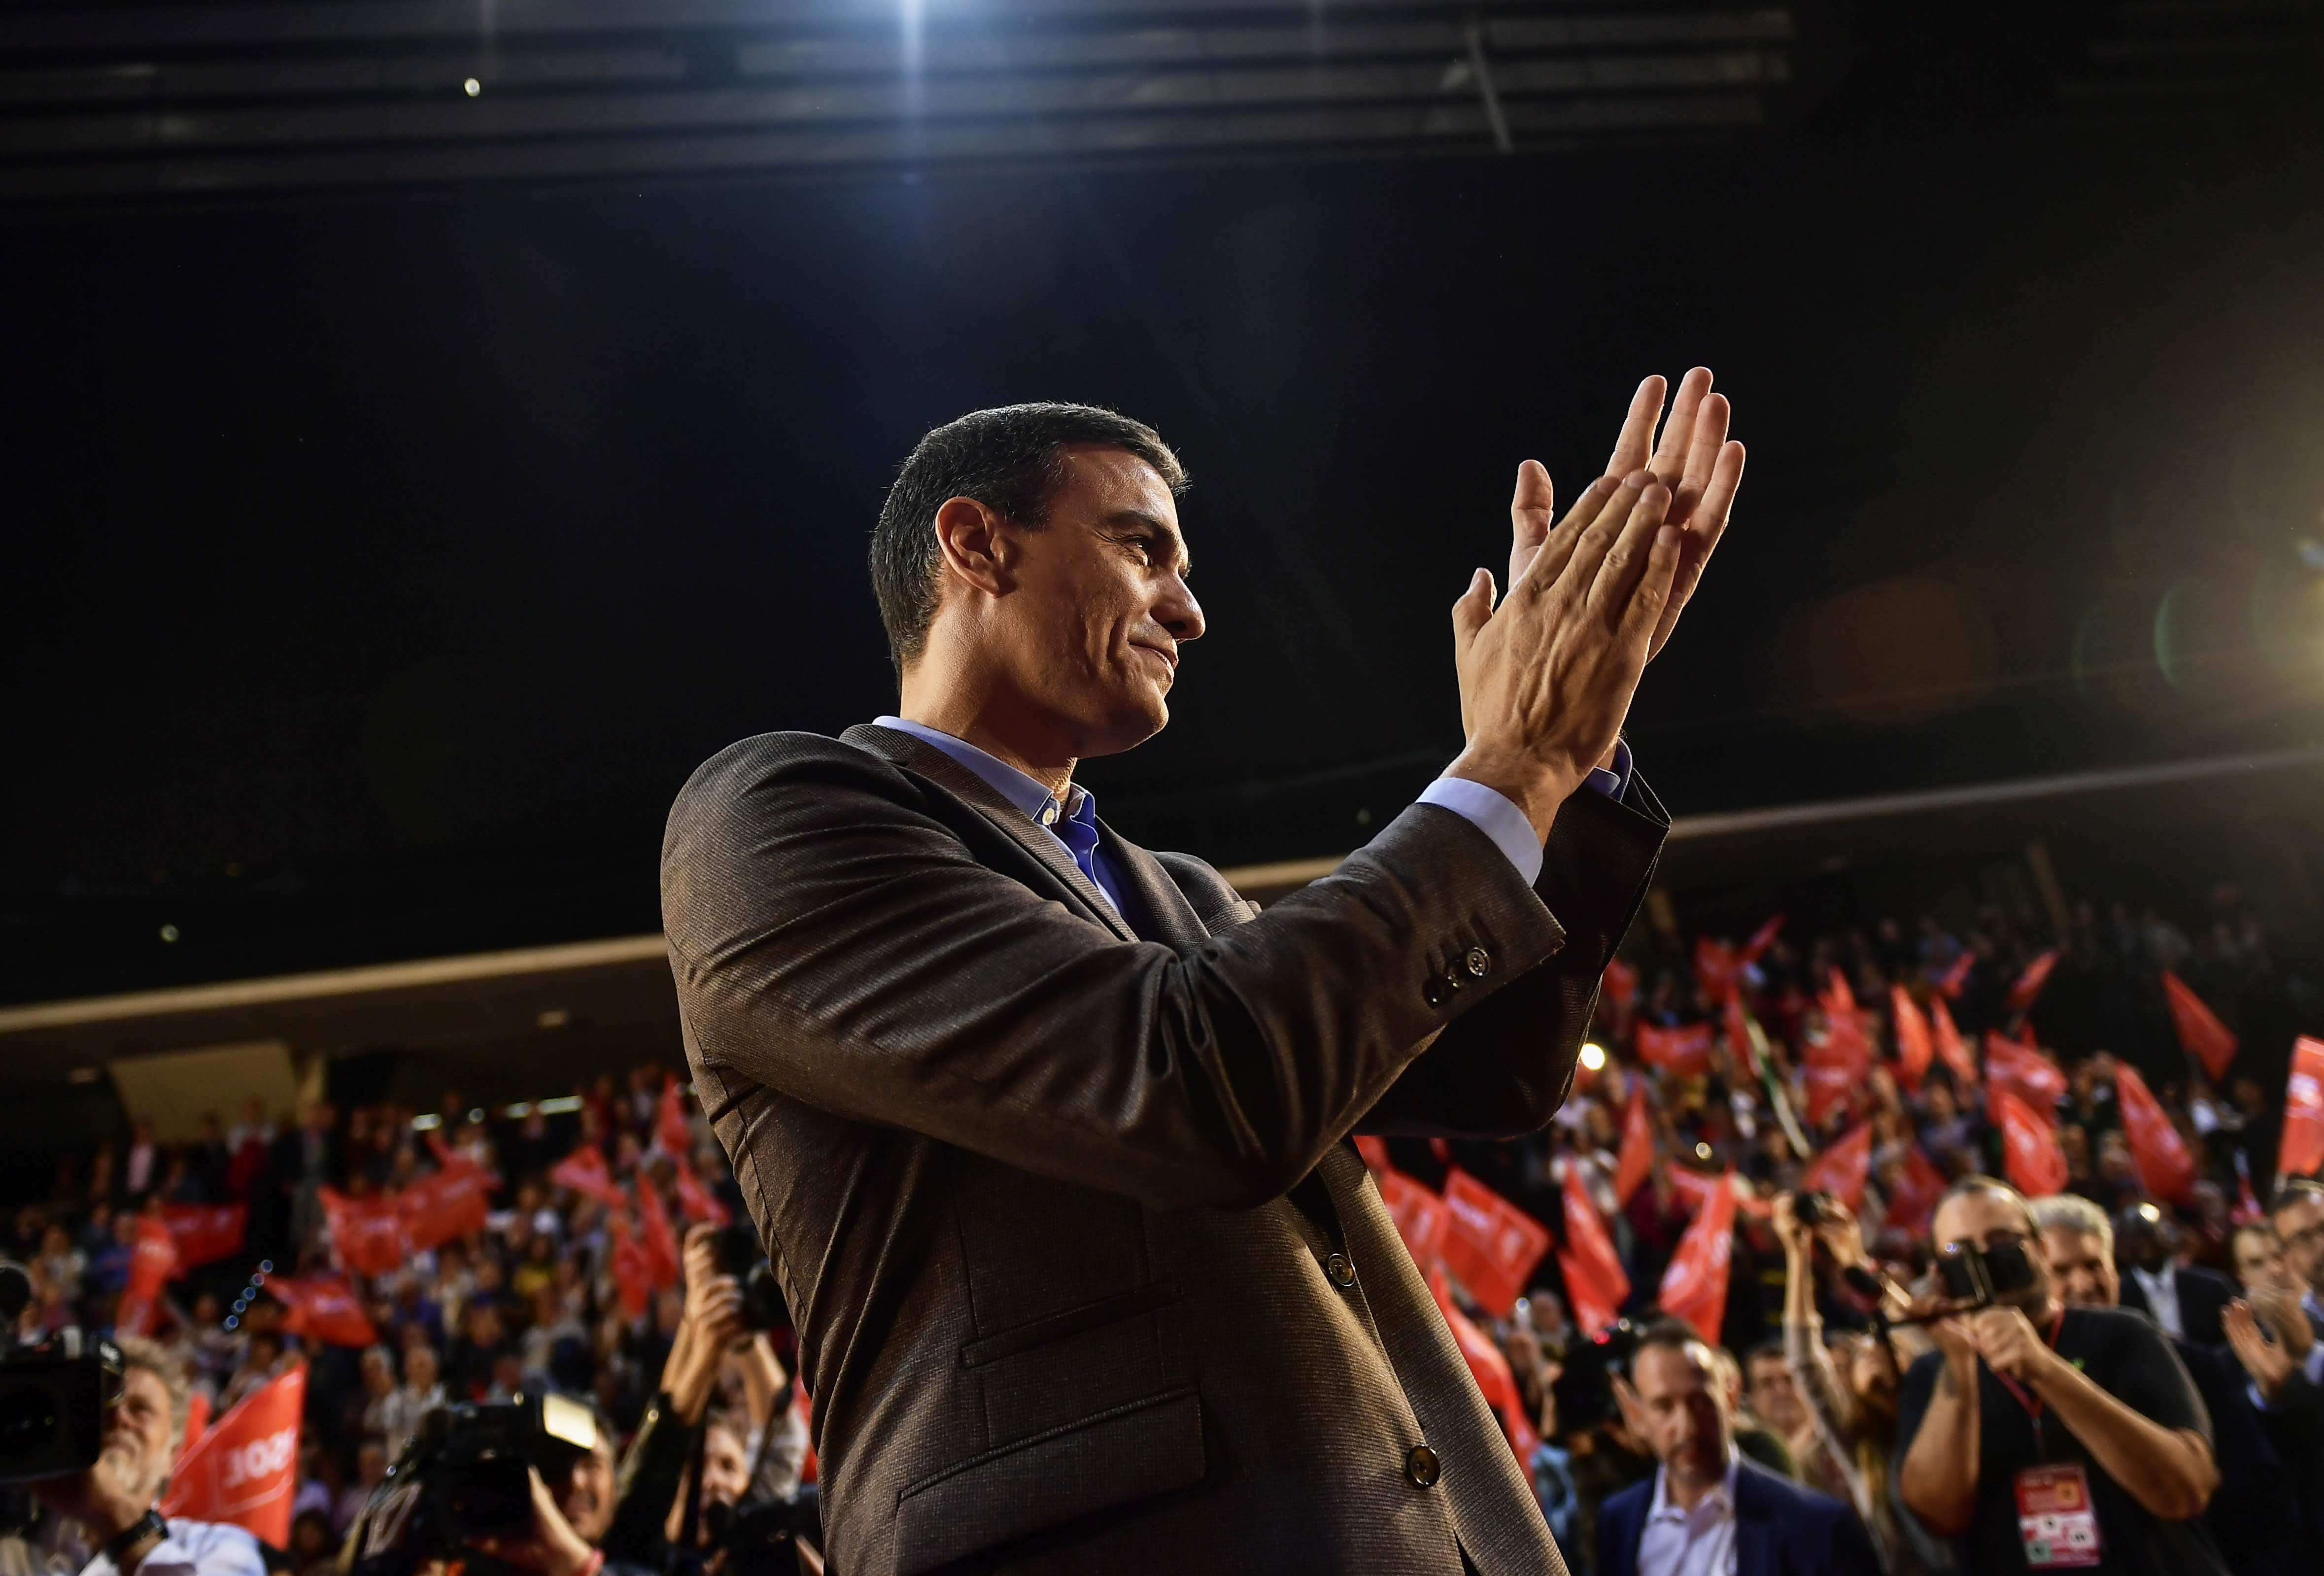 FILE - In this Nov. 1, 2019, file photo, Spain's caretaker Prime Minister and socialist candidate Pedro Sanchez applauds socialist followers during a general election campaign rally in Pamplona, northern Spain. Sanchez's Socialists won Spain's national election on Sunday but large gains by the upstart far-right Vox party appear certain to widen the political deadlock in the European Union's fifth-largest economy. (AP Photo/Alvaro Barrientos, File)